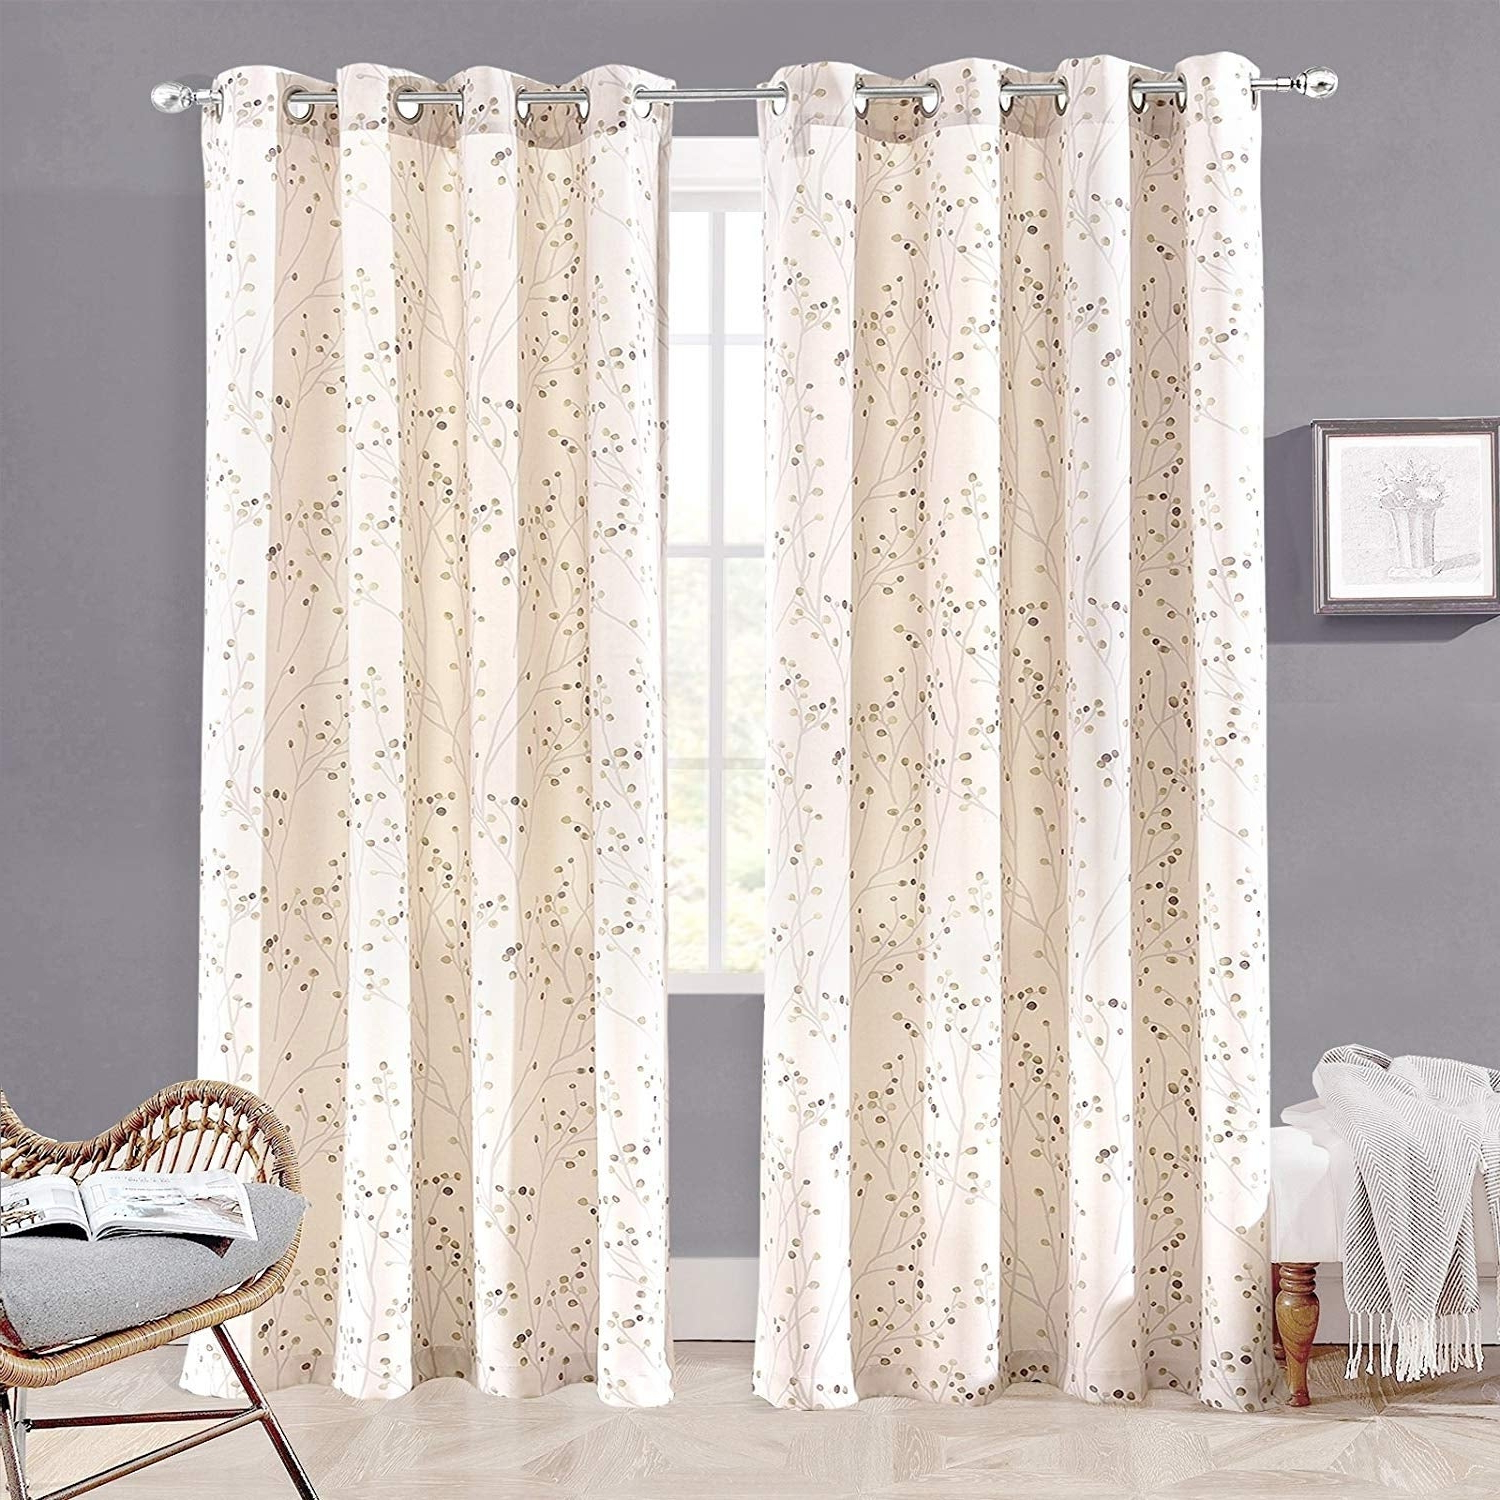 "Widely Used Floral Pattern Room Darkening Window Curtain Panel Pairs Within Driftaway Harper Ink Floral Pattern Room Darkening Window Curtain Panel Pair – 50""widthx84""length (View 3 of 20)"